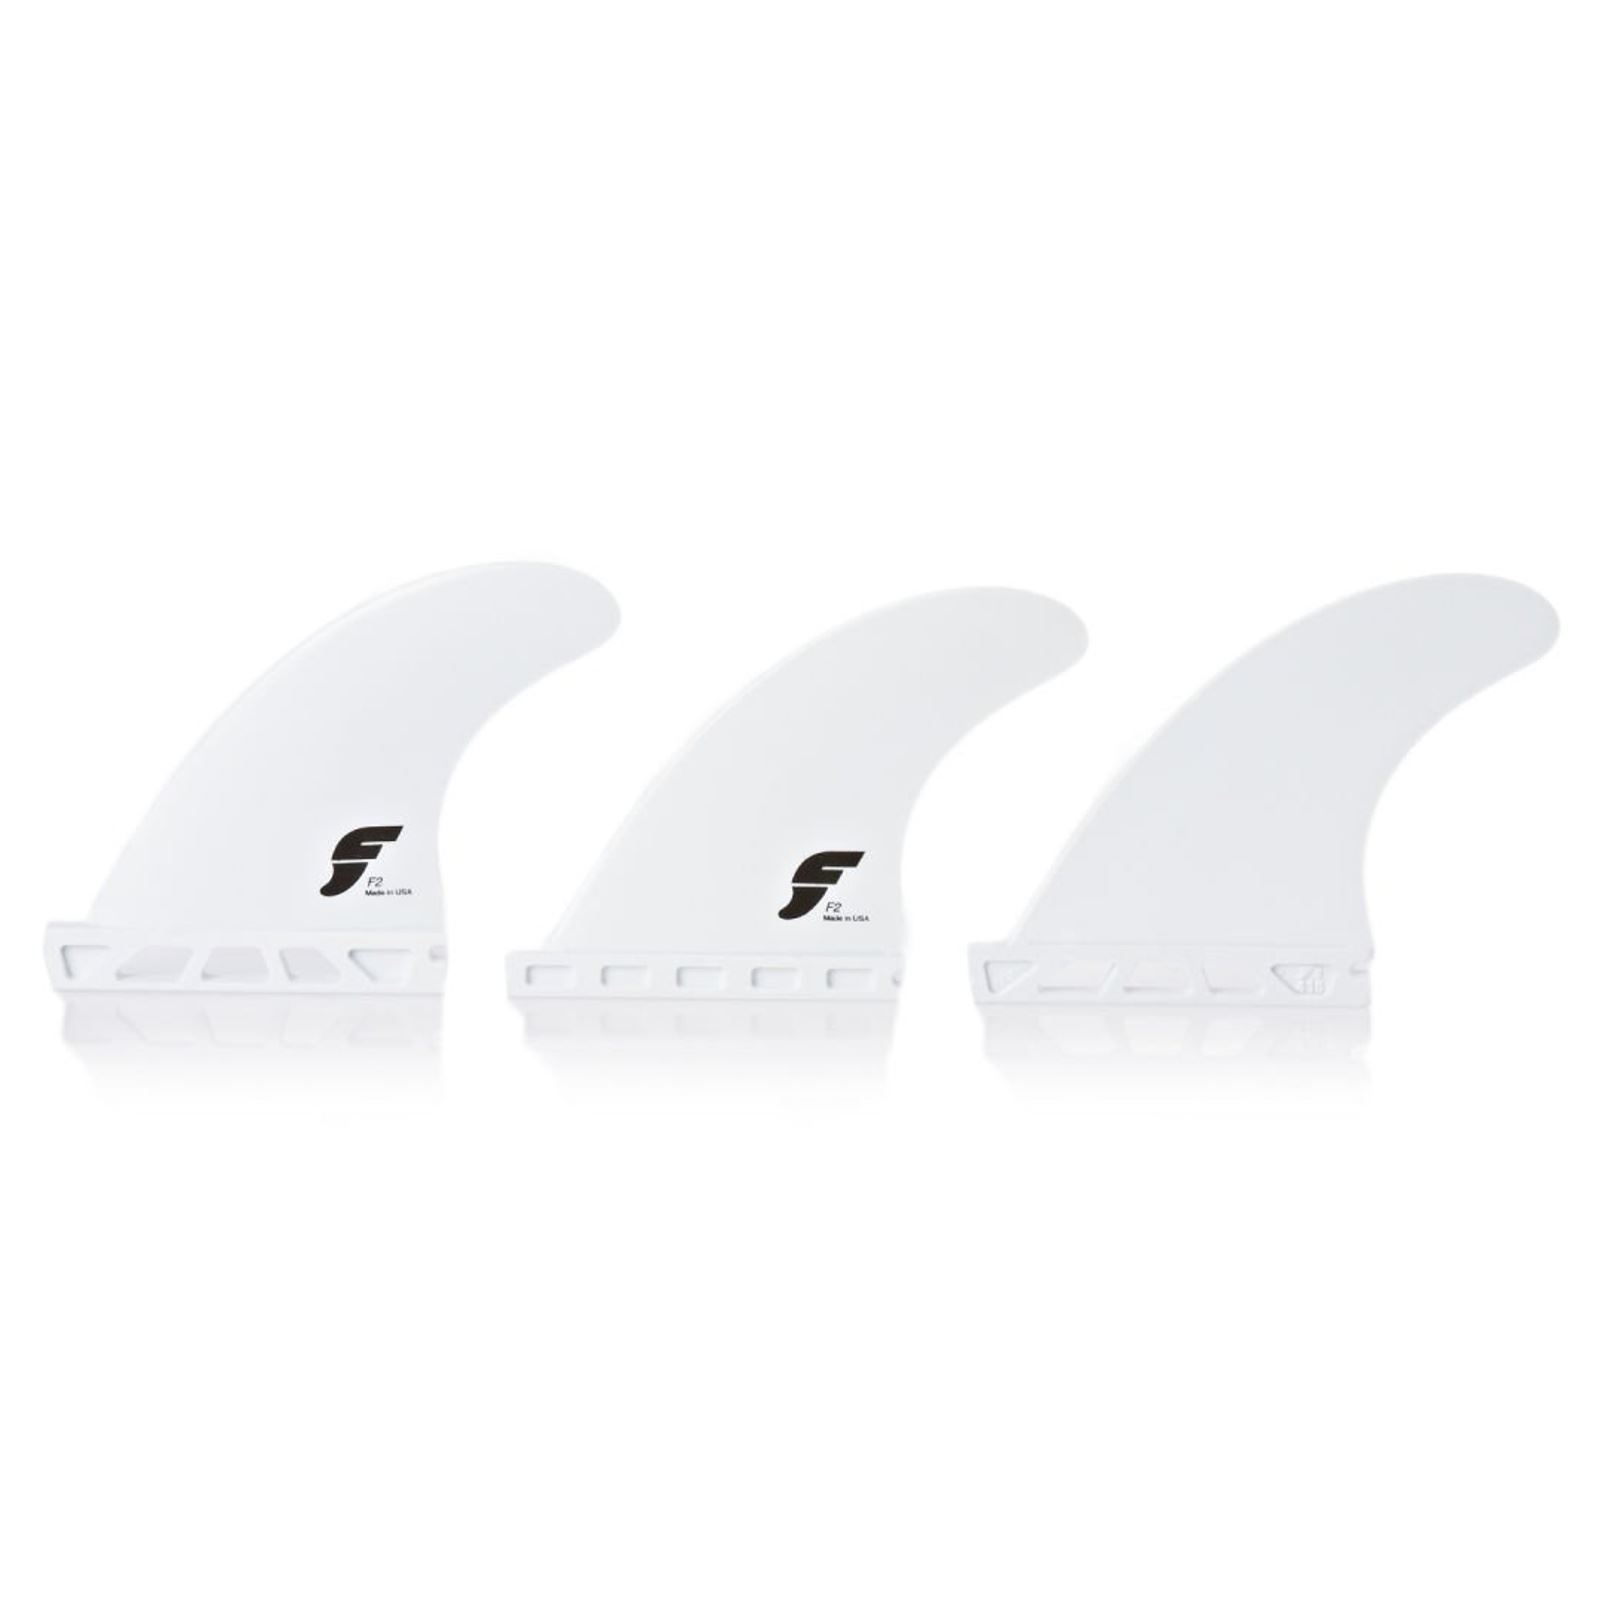 FUTURES Thruster Fin Set F2 Thermotech